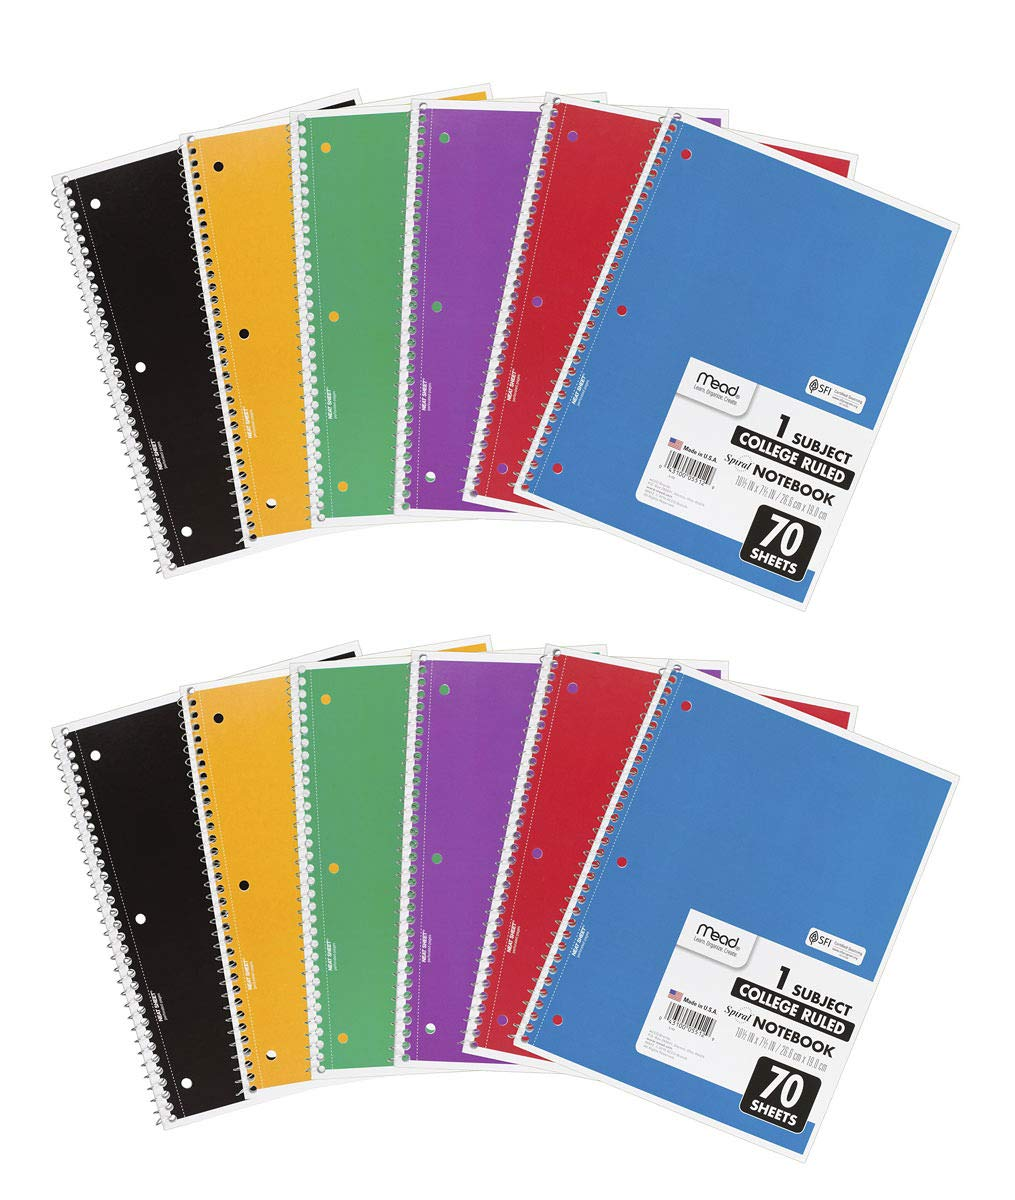 Mead dscfs Spiral Notebooks, 1 Subject, College Ruled Paper, 70 Sheets, 10-1/2'' x 7-1/2'', Assorted Colors, (73065) 12 Pack by Mead